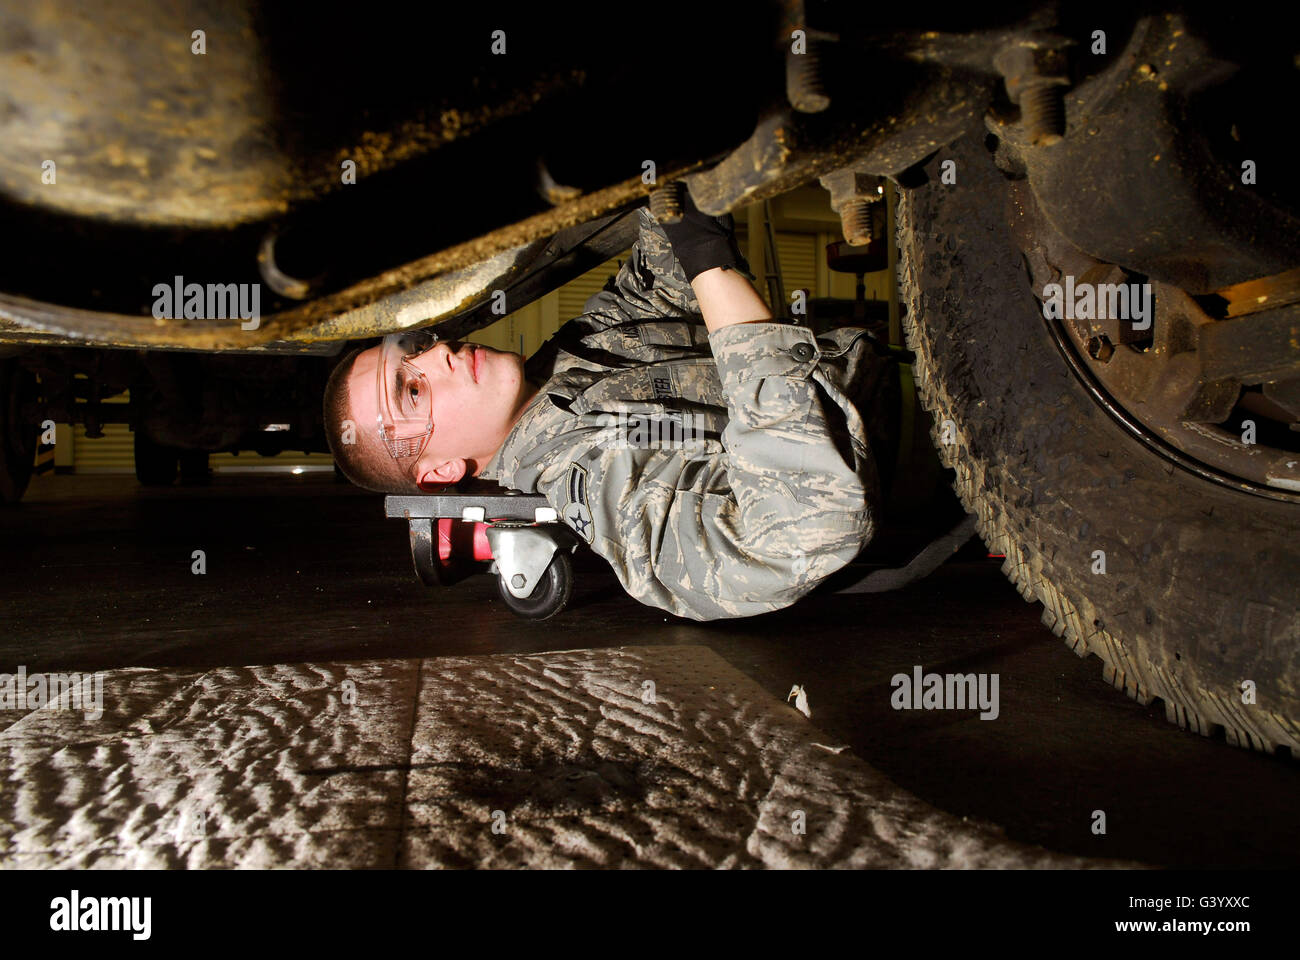 An Airman inspects the undercarriage of an F-350 truck. - Stock Image